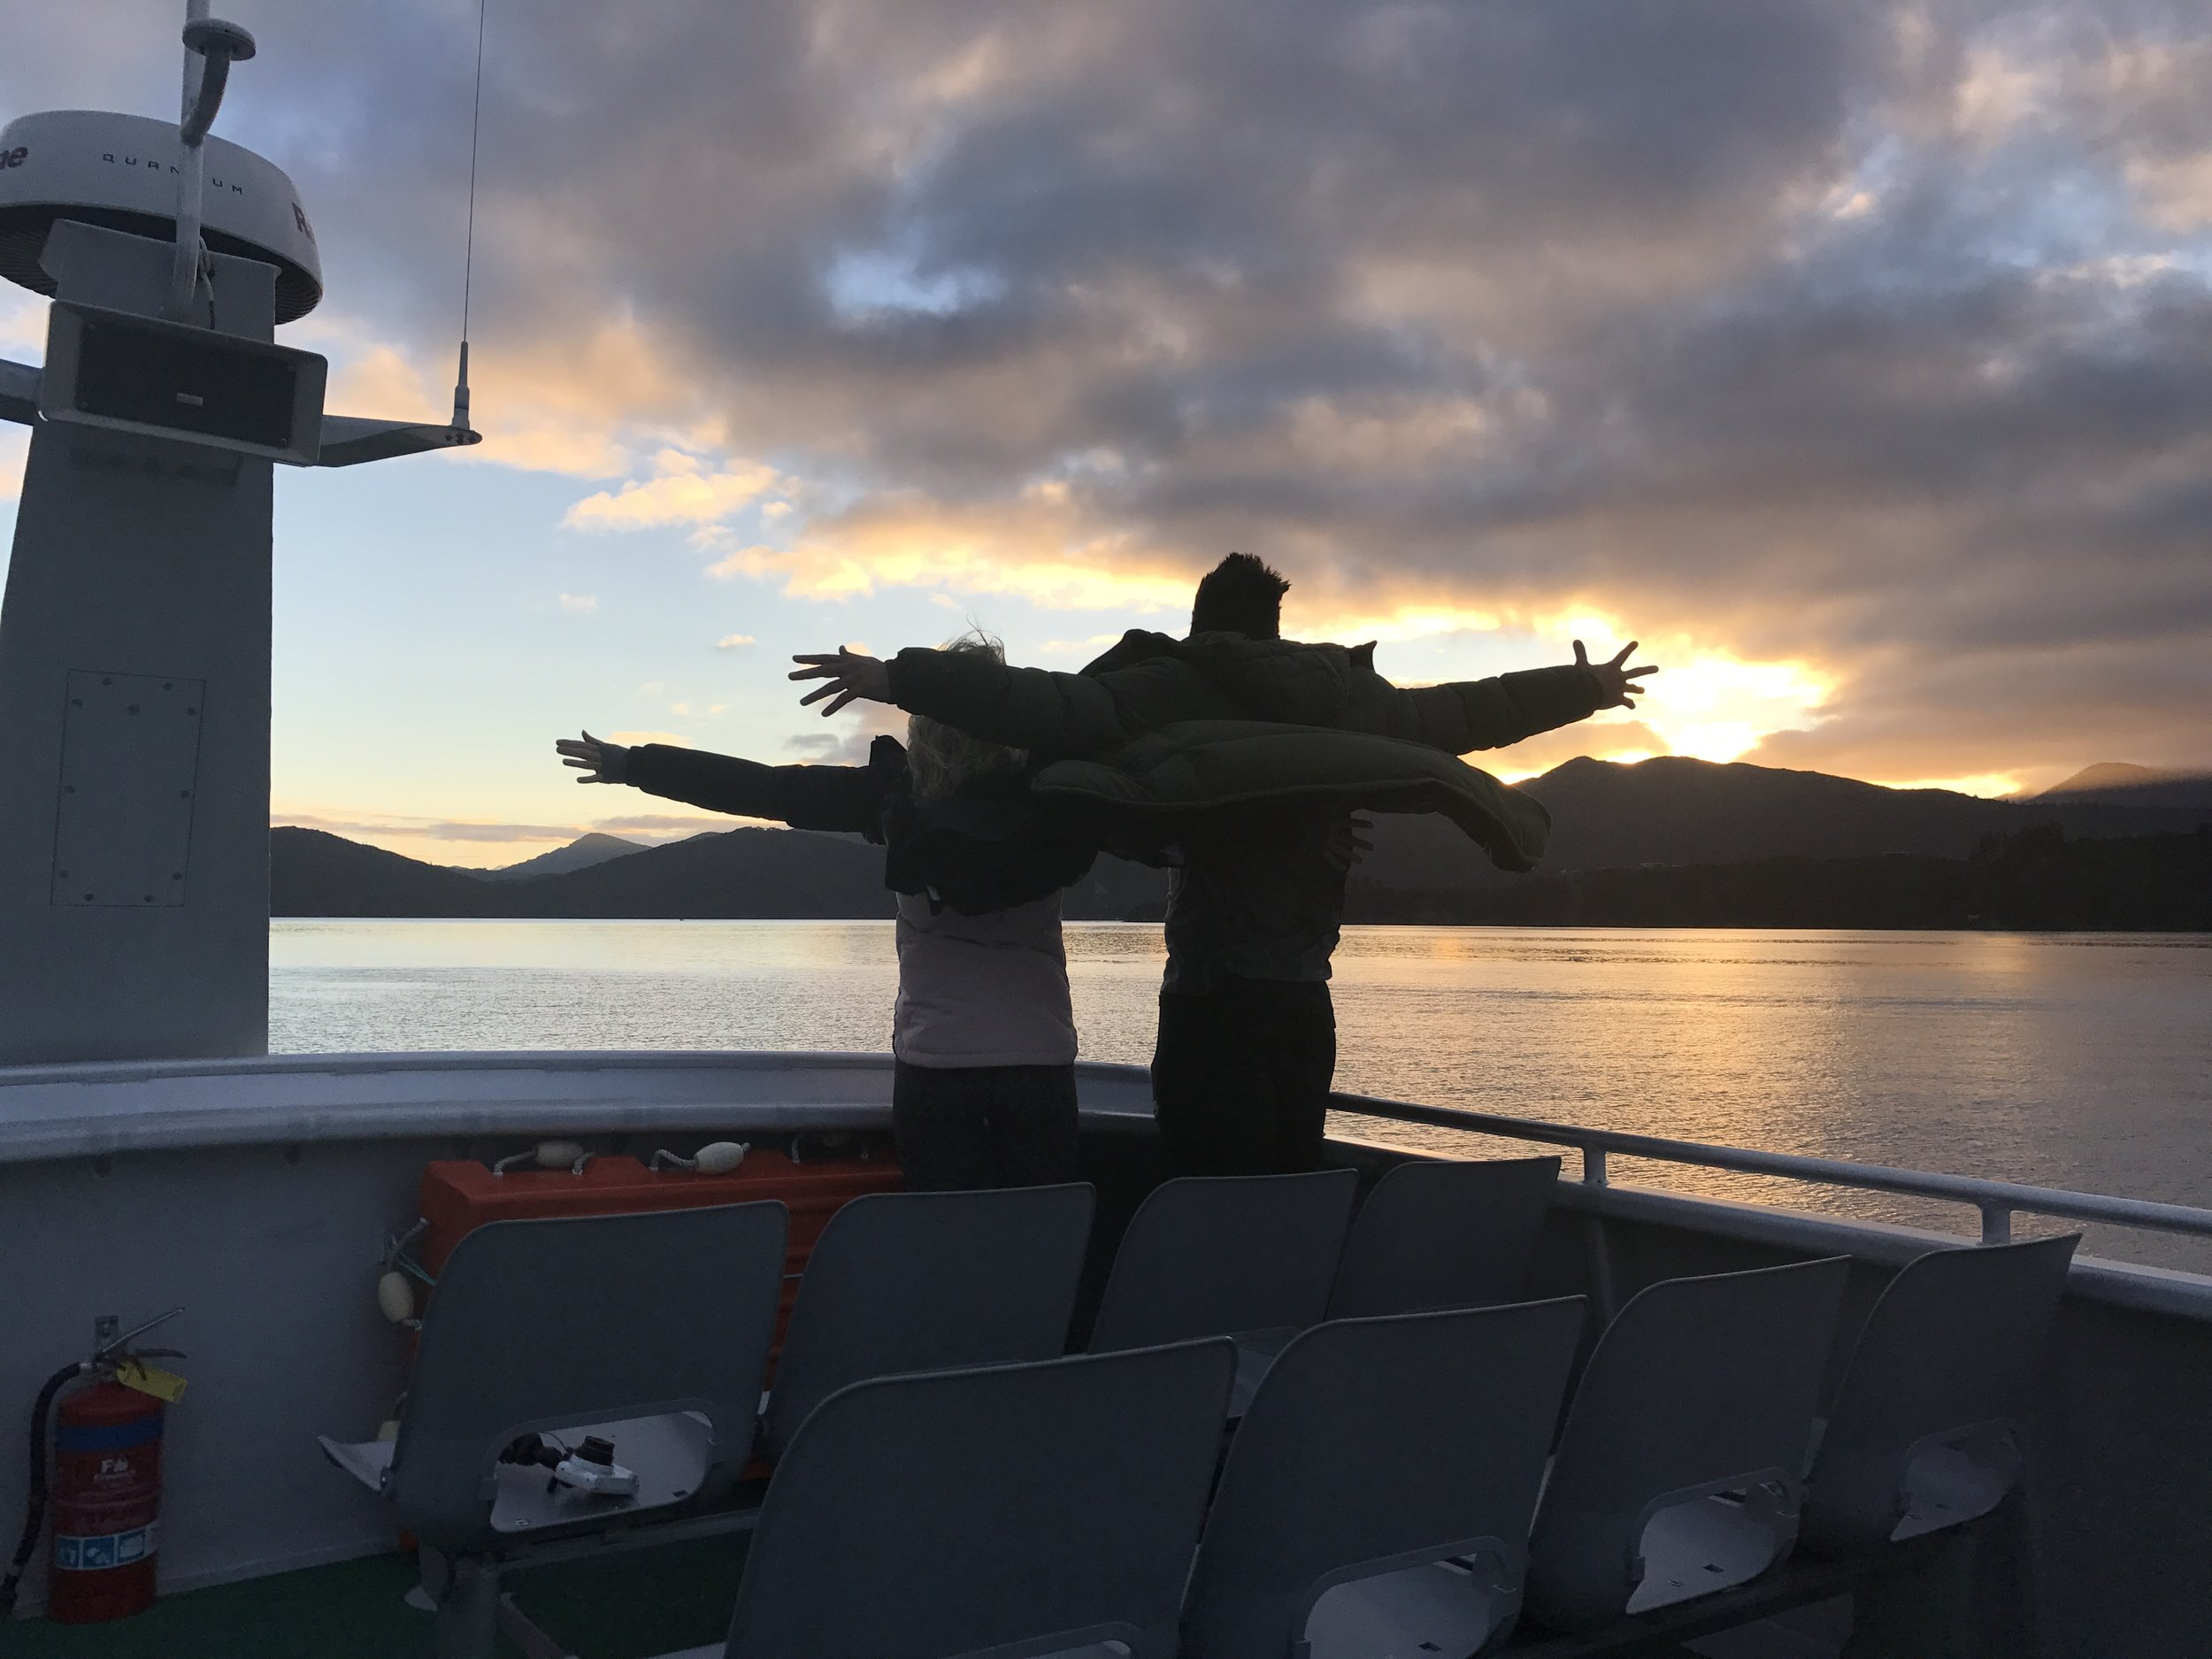 Just having our own little Titanic moment on the way home. When the view is that amazing, there's no other option IMO.